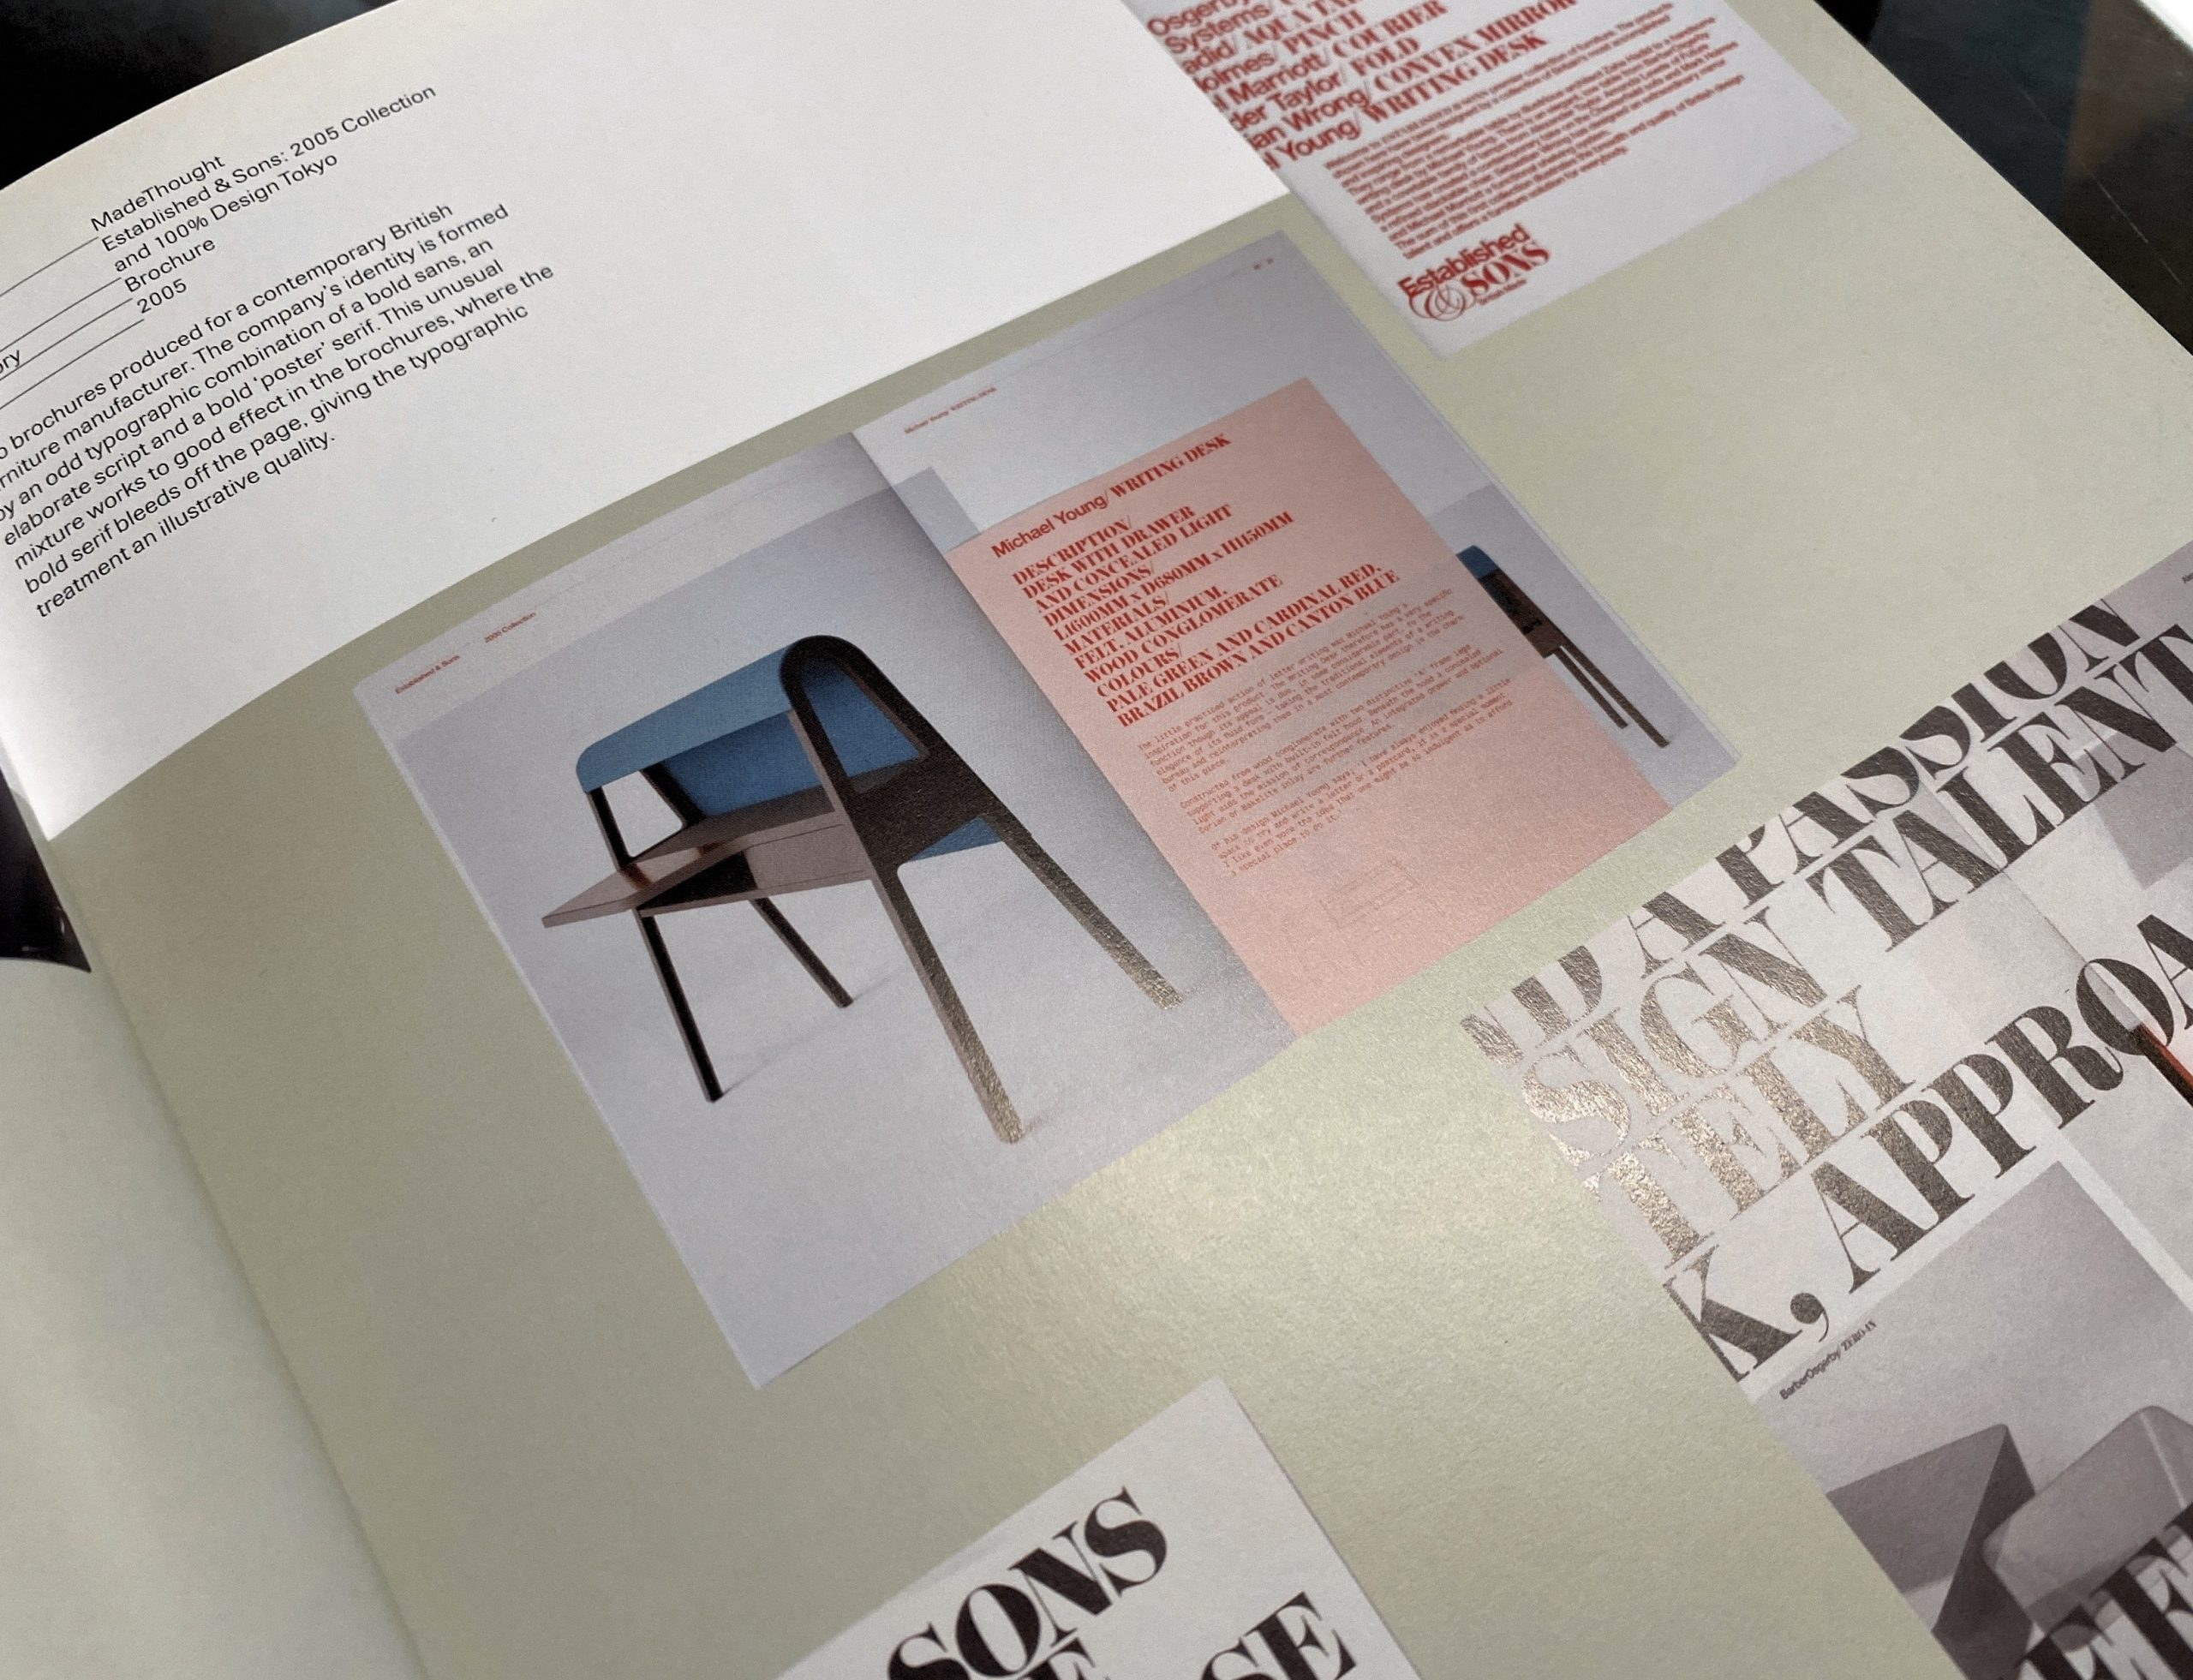 Negative space as seen in a graphic design book